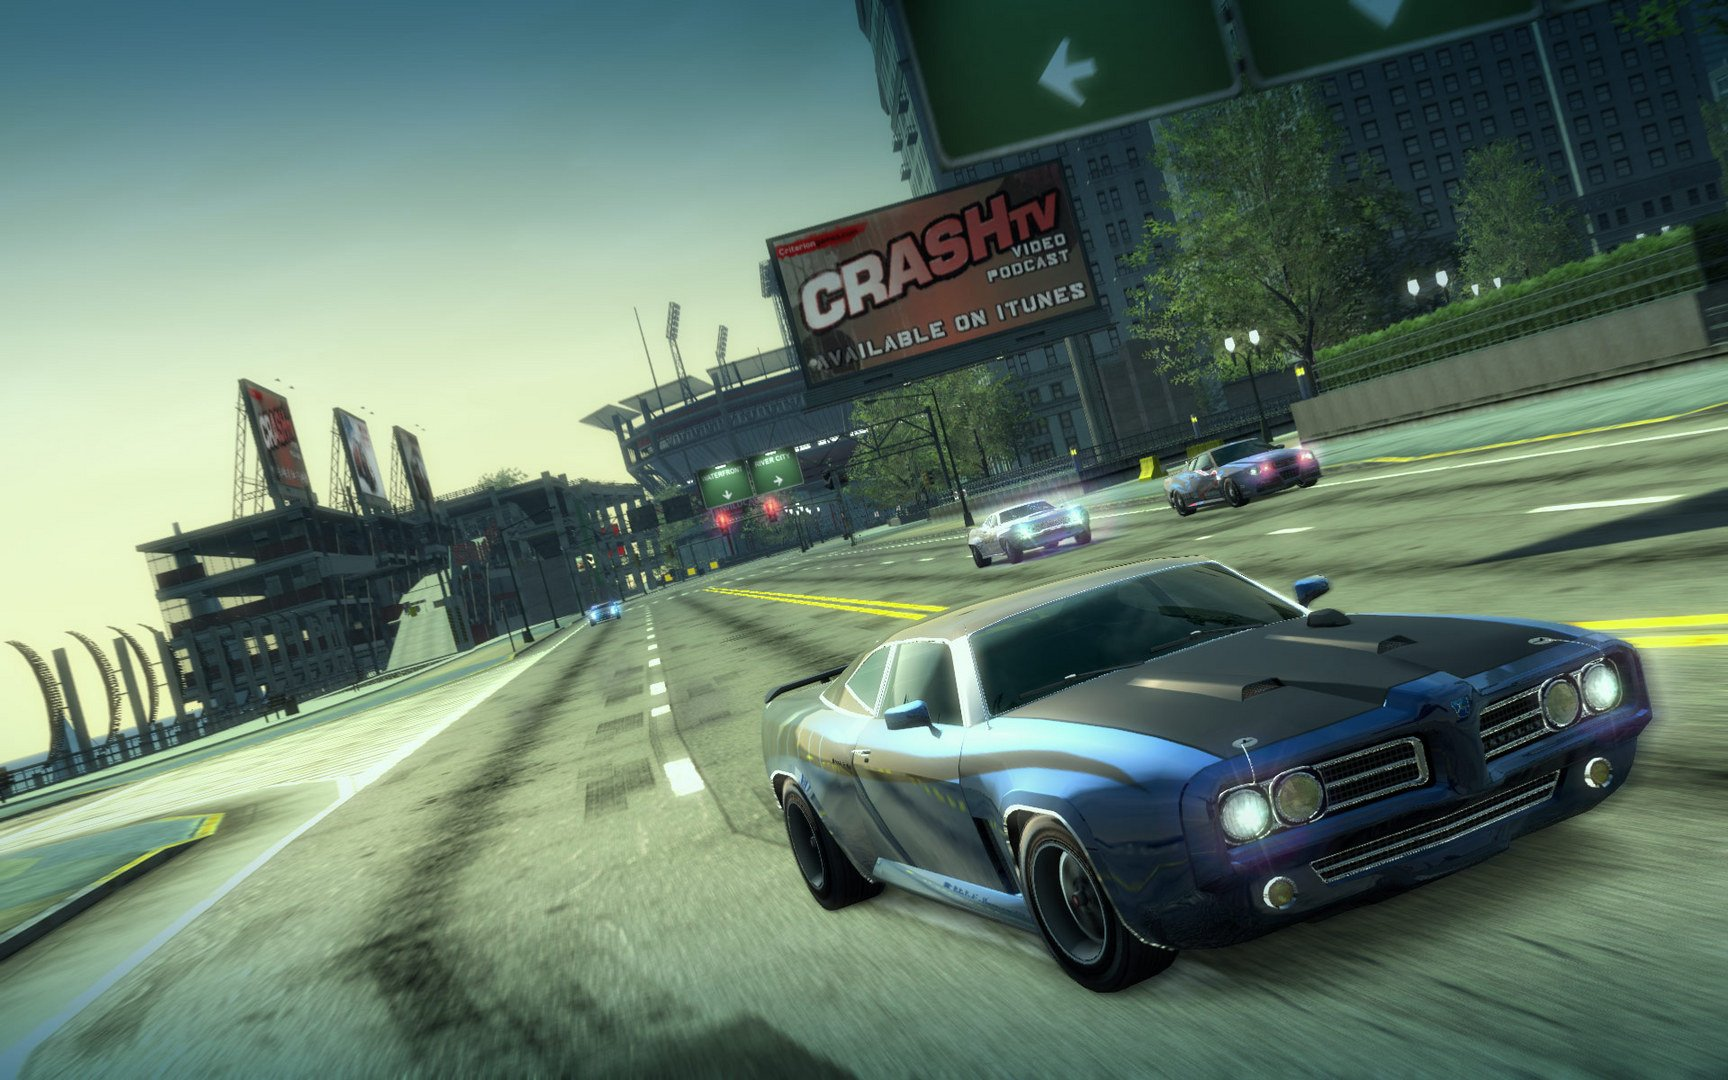 EA Officially Announces Burnout Paradise Remastered Releasing in March